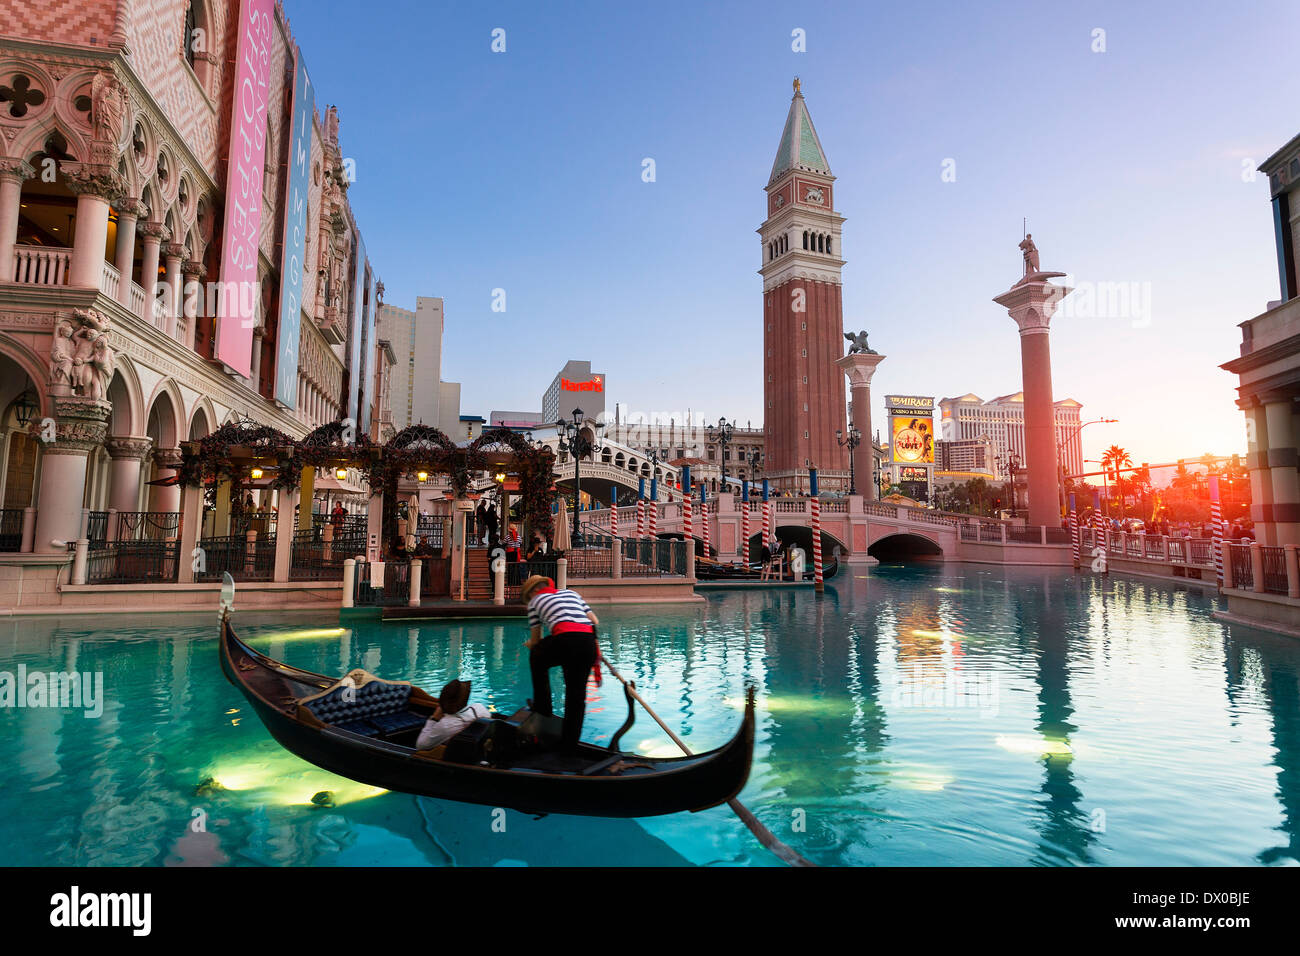 Las Vegas, le Venetian Hotel Photo Stock